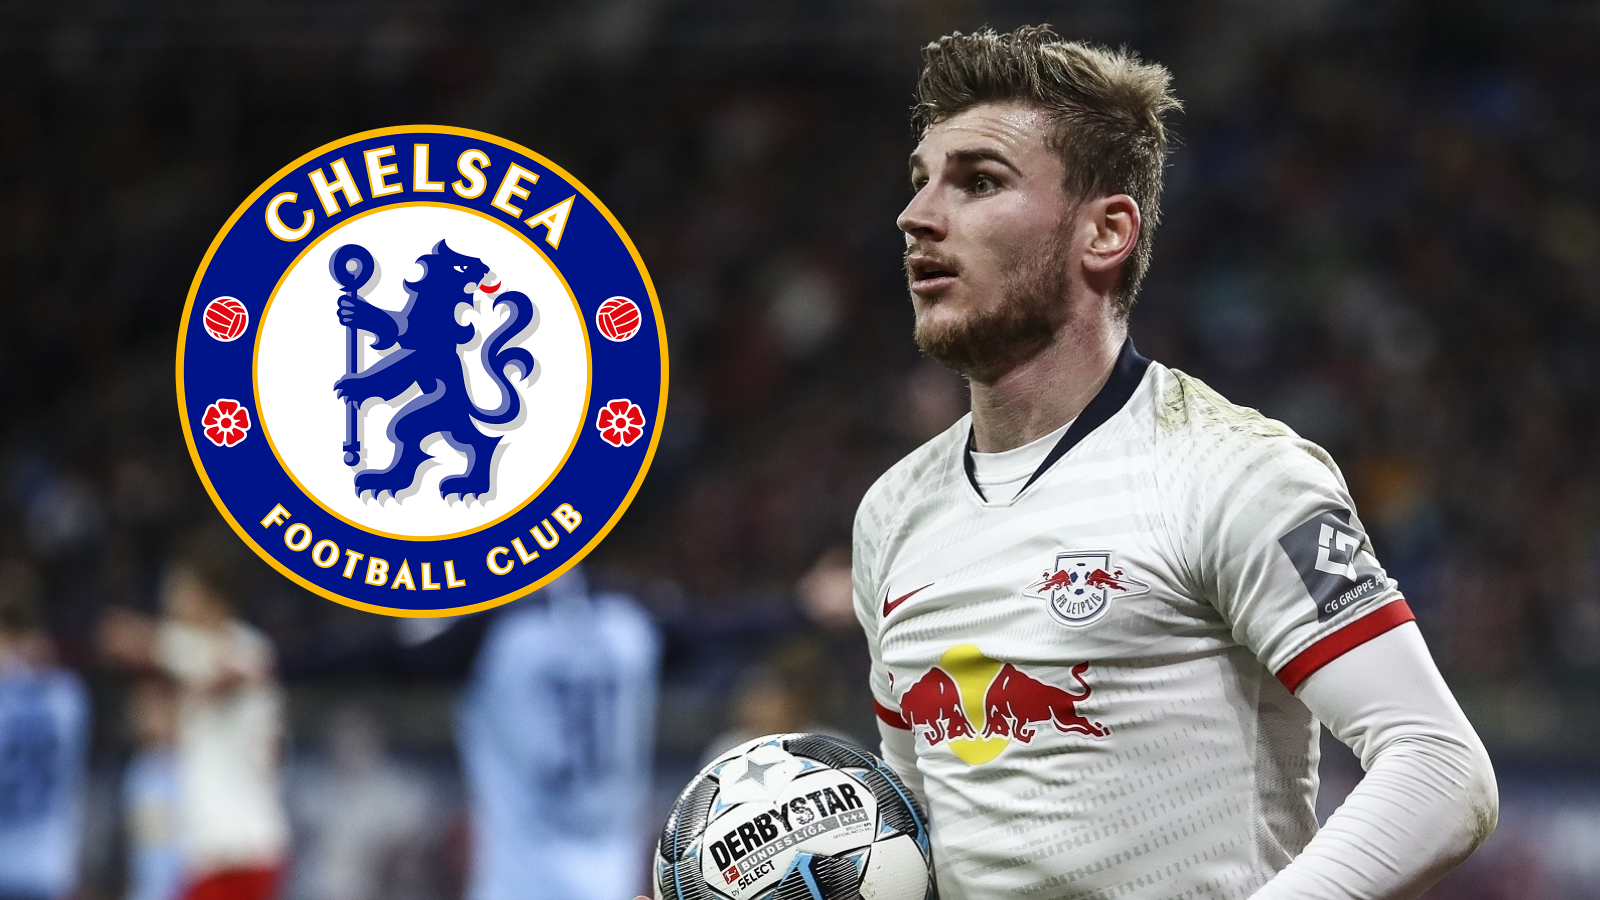 Werner will need time to show his best qualities at Chelsea, says former RB Leipzig team-mate Poulsen